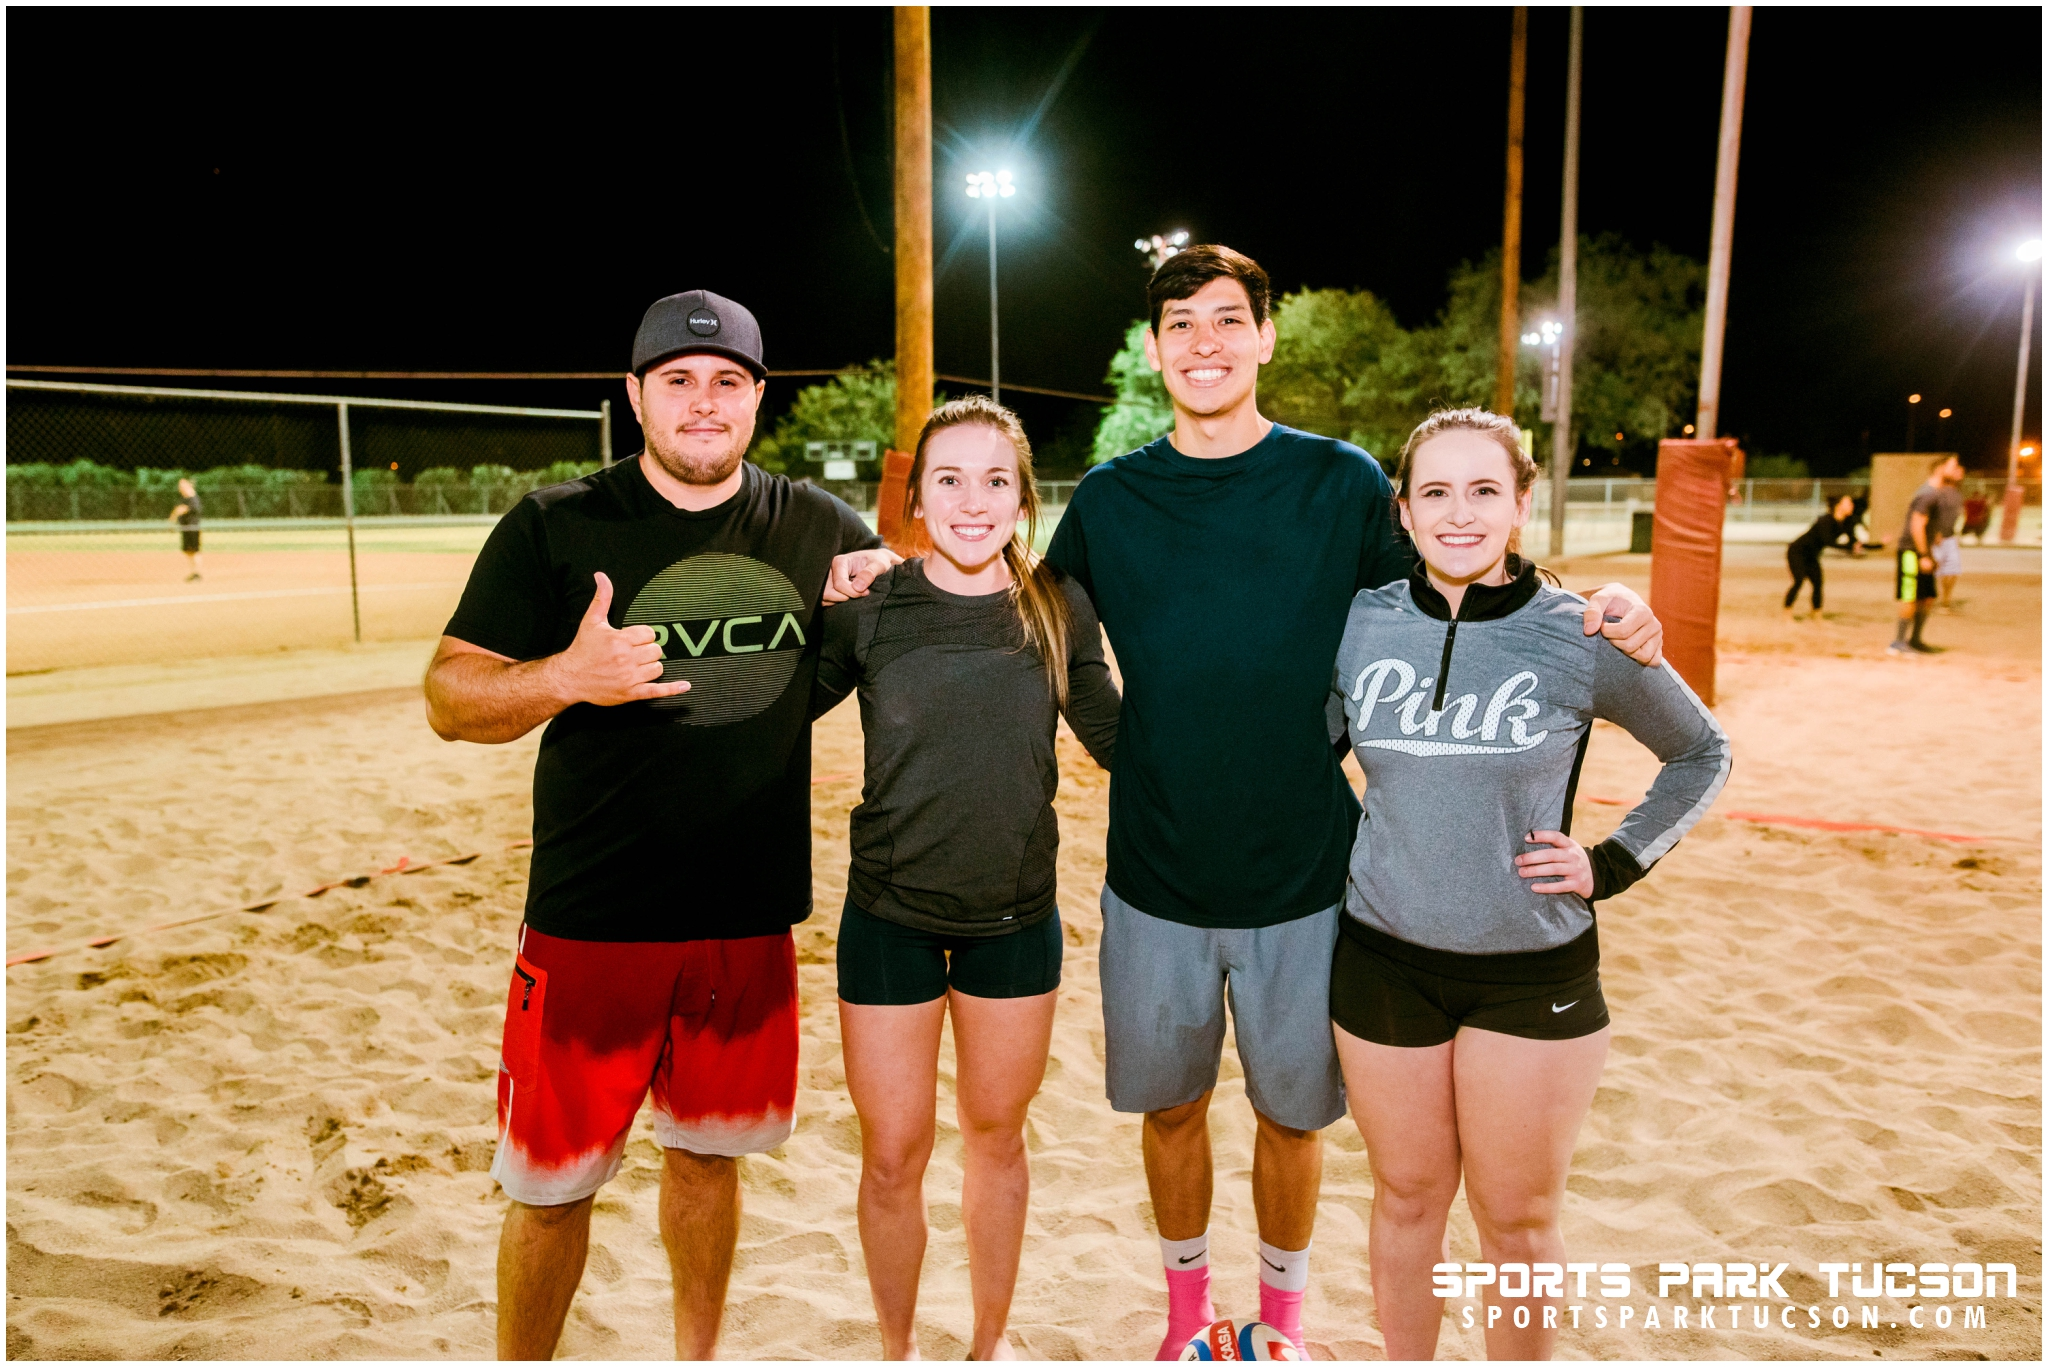 Volleyball Wed Co-ed 4 v 4 - Gold, Team: Fourgasm